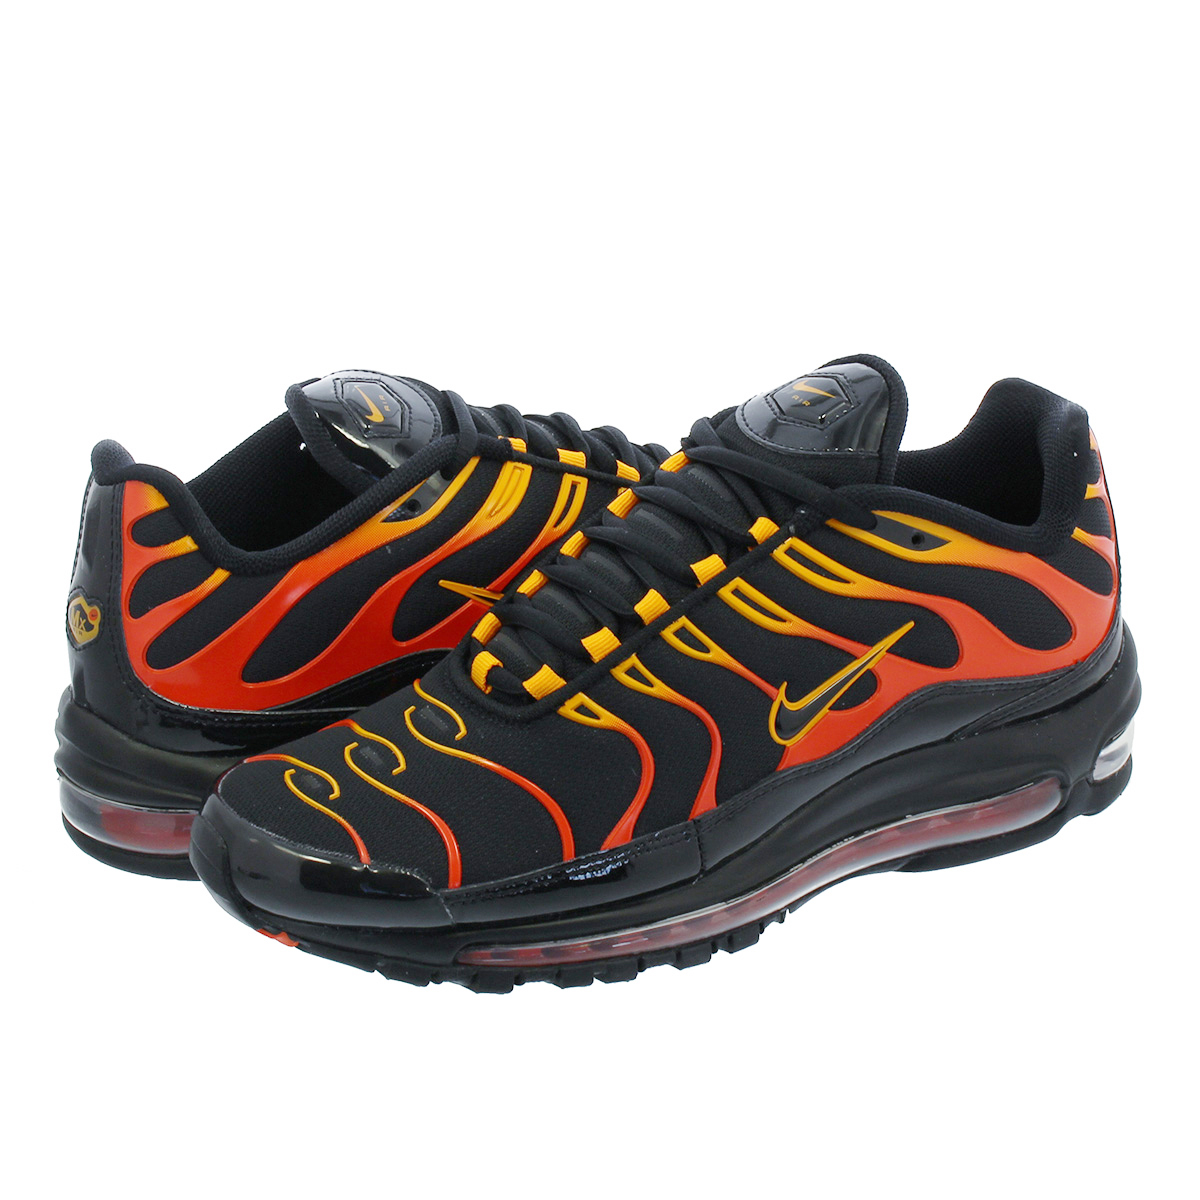 official photos bfd1d 2c287 NIKE AIR MAX 97 PLUS Kie Ney AMAX 97 plus BLACK/ENGINE 1 /SHOCK ORANGE  ah8144-002